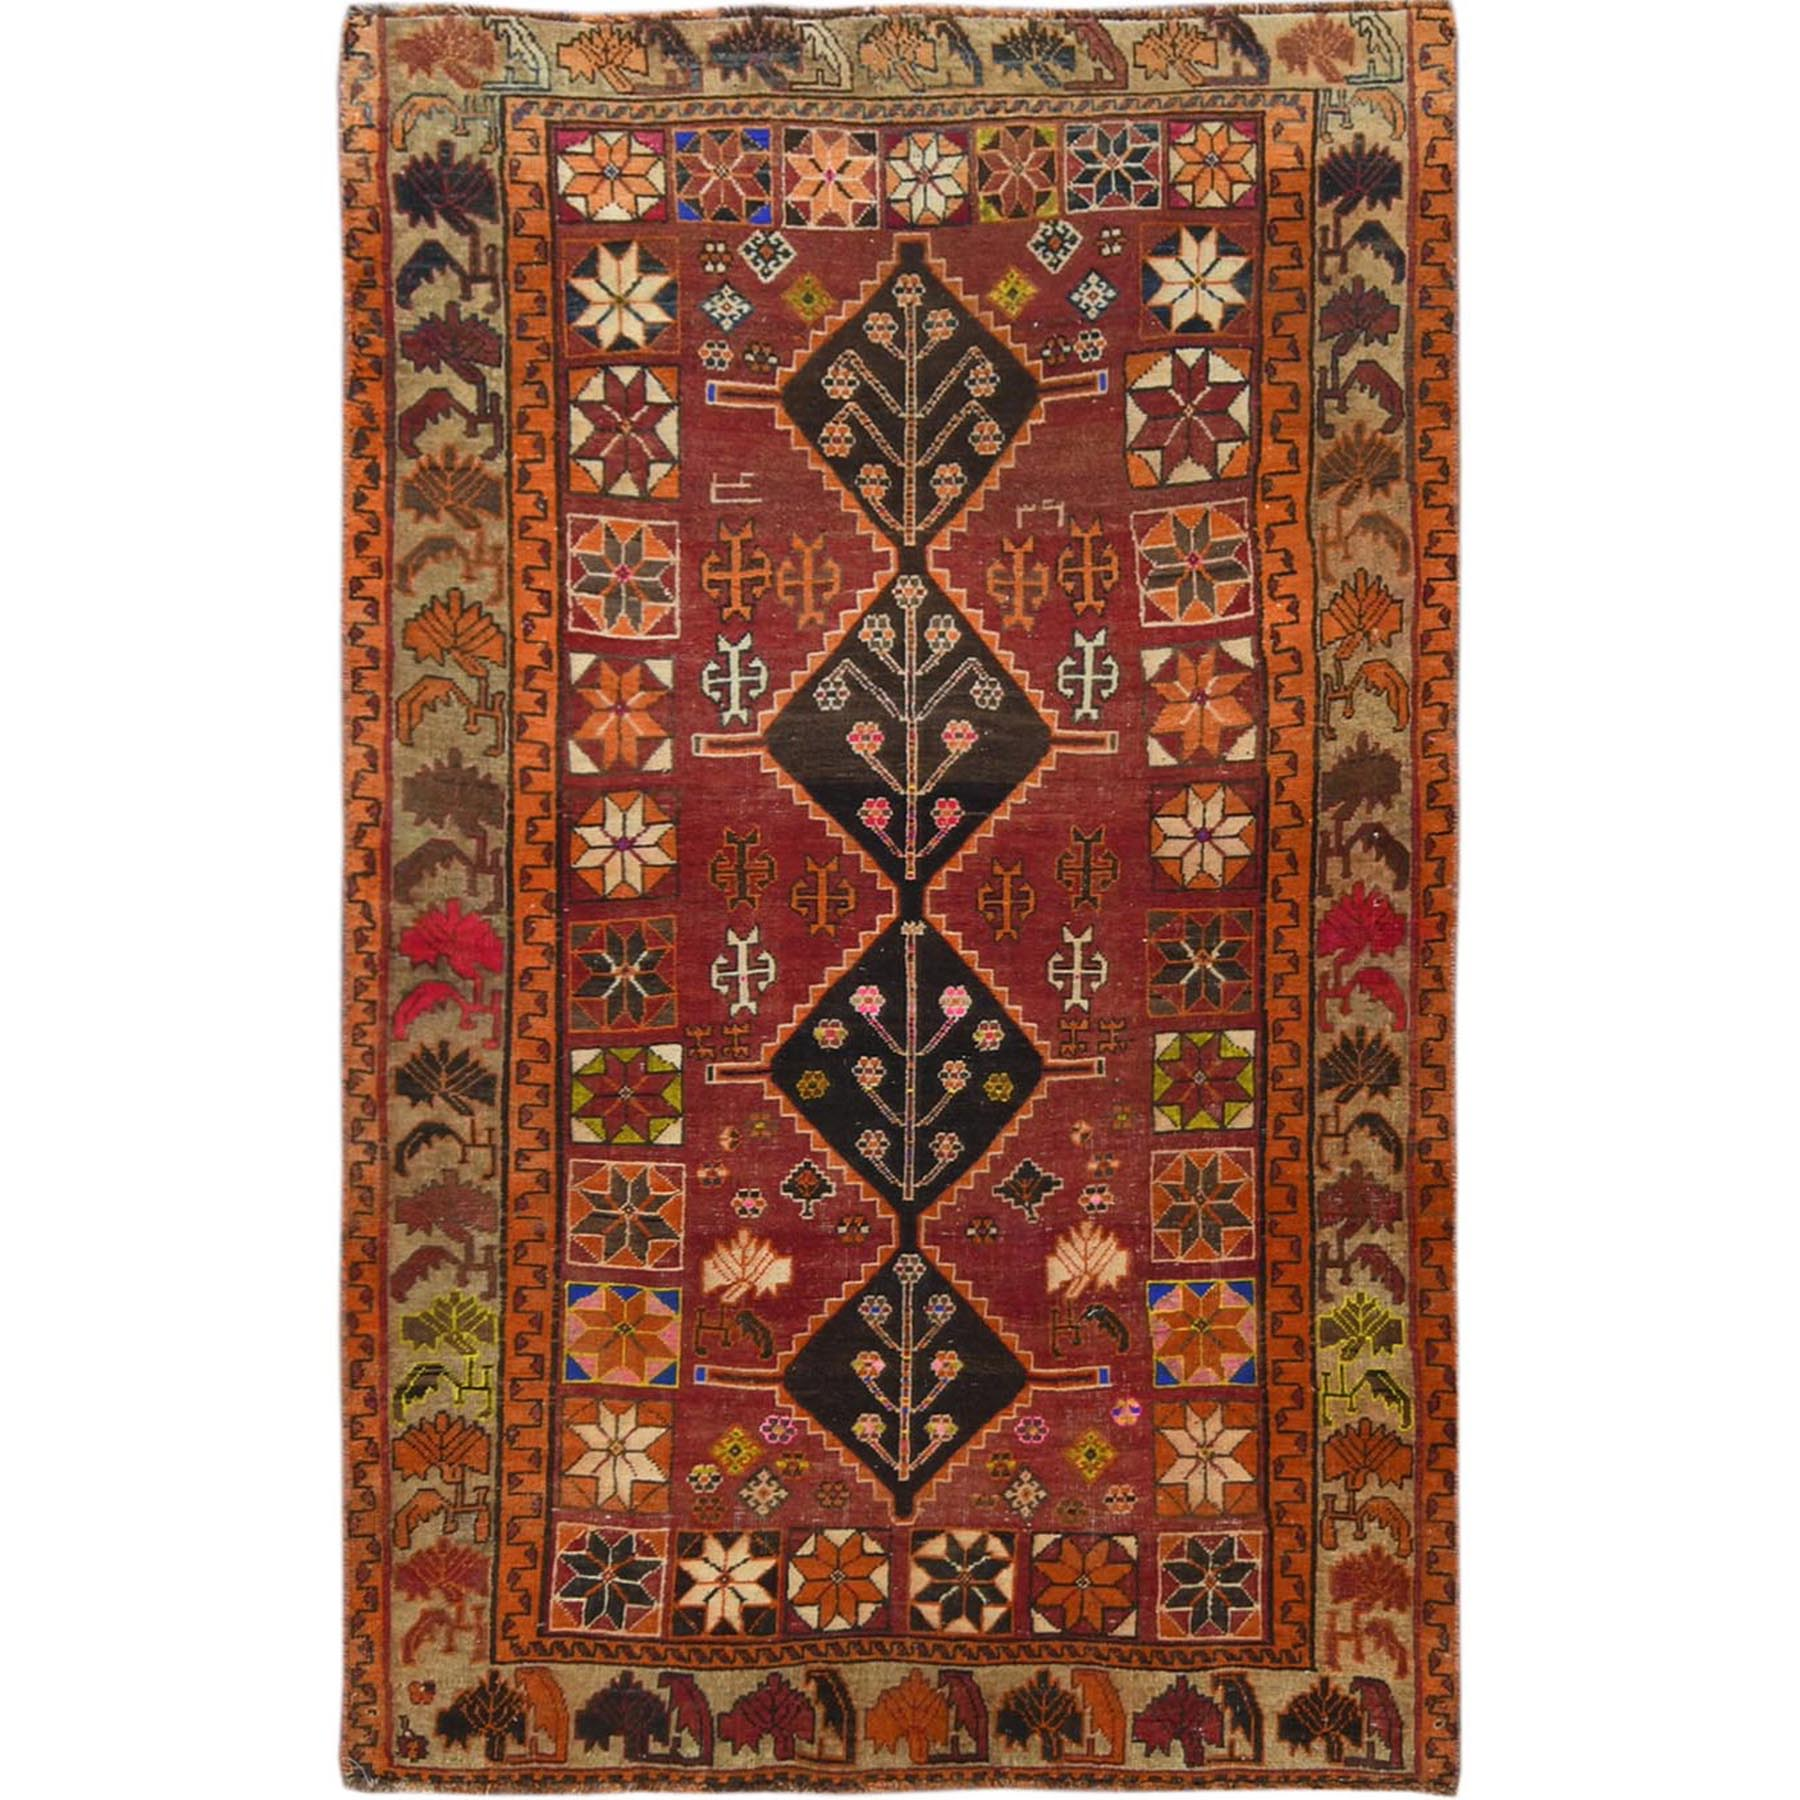 "4'3""x7' Vintage Persian Qashqai Worn Down Excellent Condition Serrated Medallion Clean Red Hand Knotted Oriental Rug"